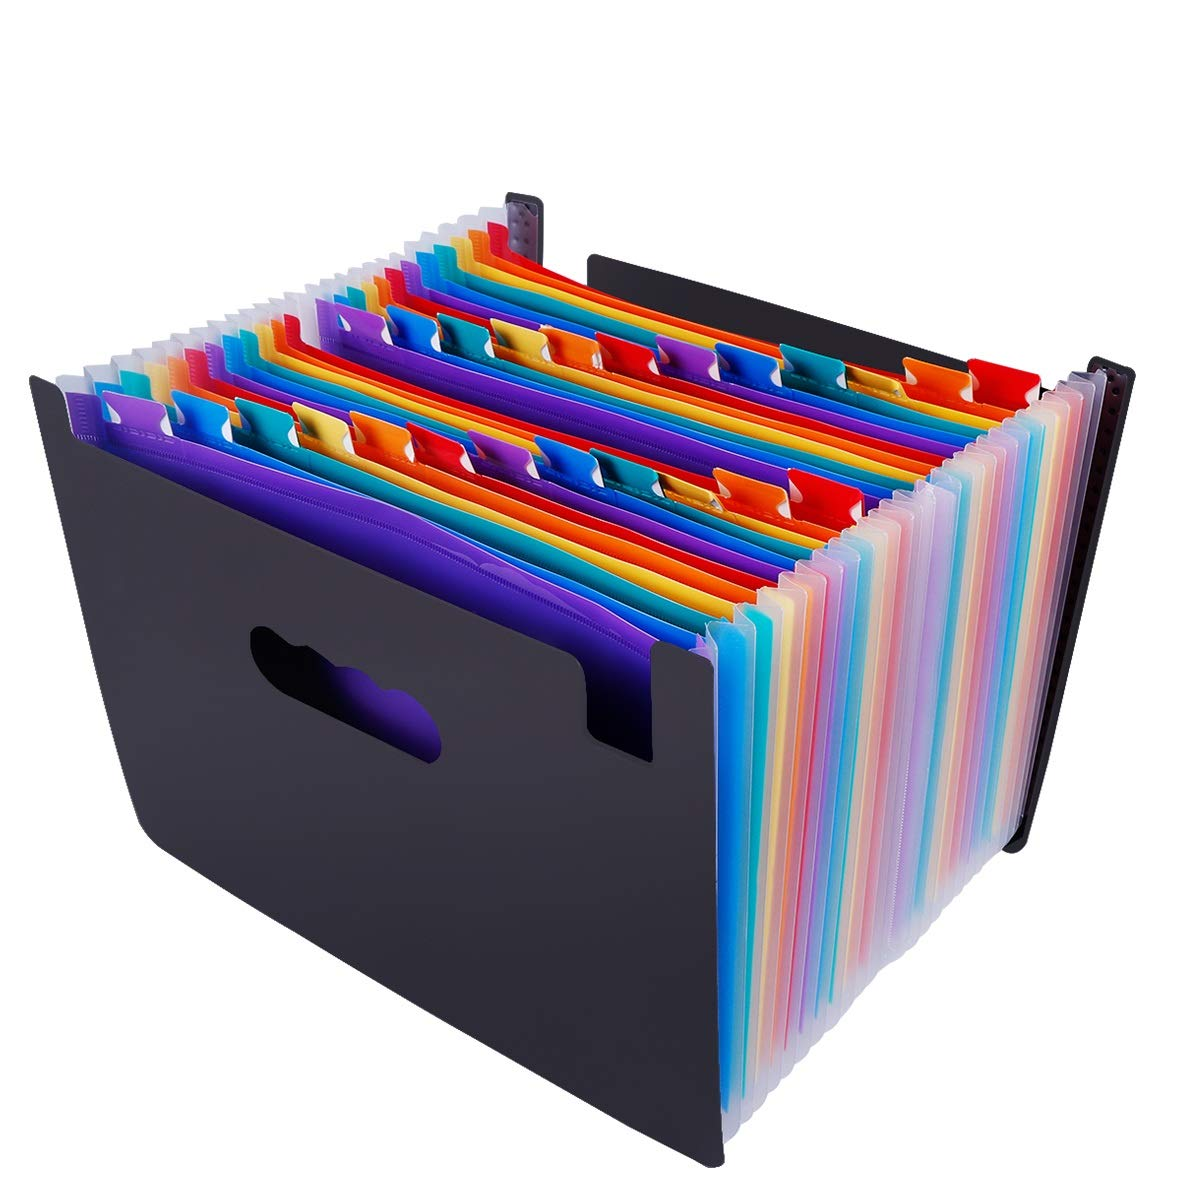 - CrazyLynX Portable A4 Expandable Accordion File Organizer 24 Pockets High Capacity Plastic File Wallets Stand Bag B Multicolored Expanding Files Folder